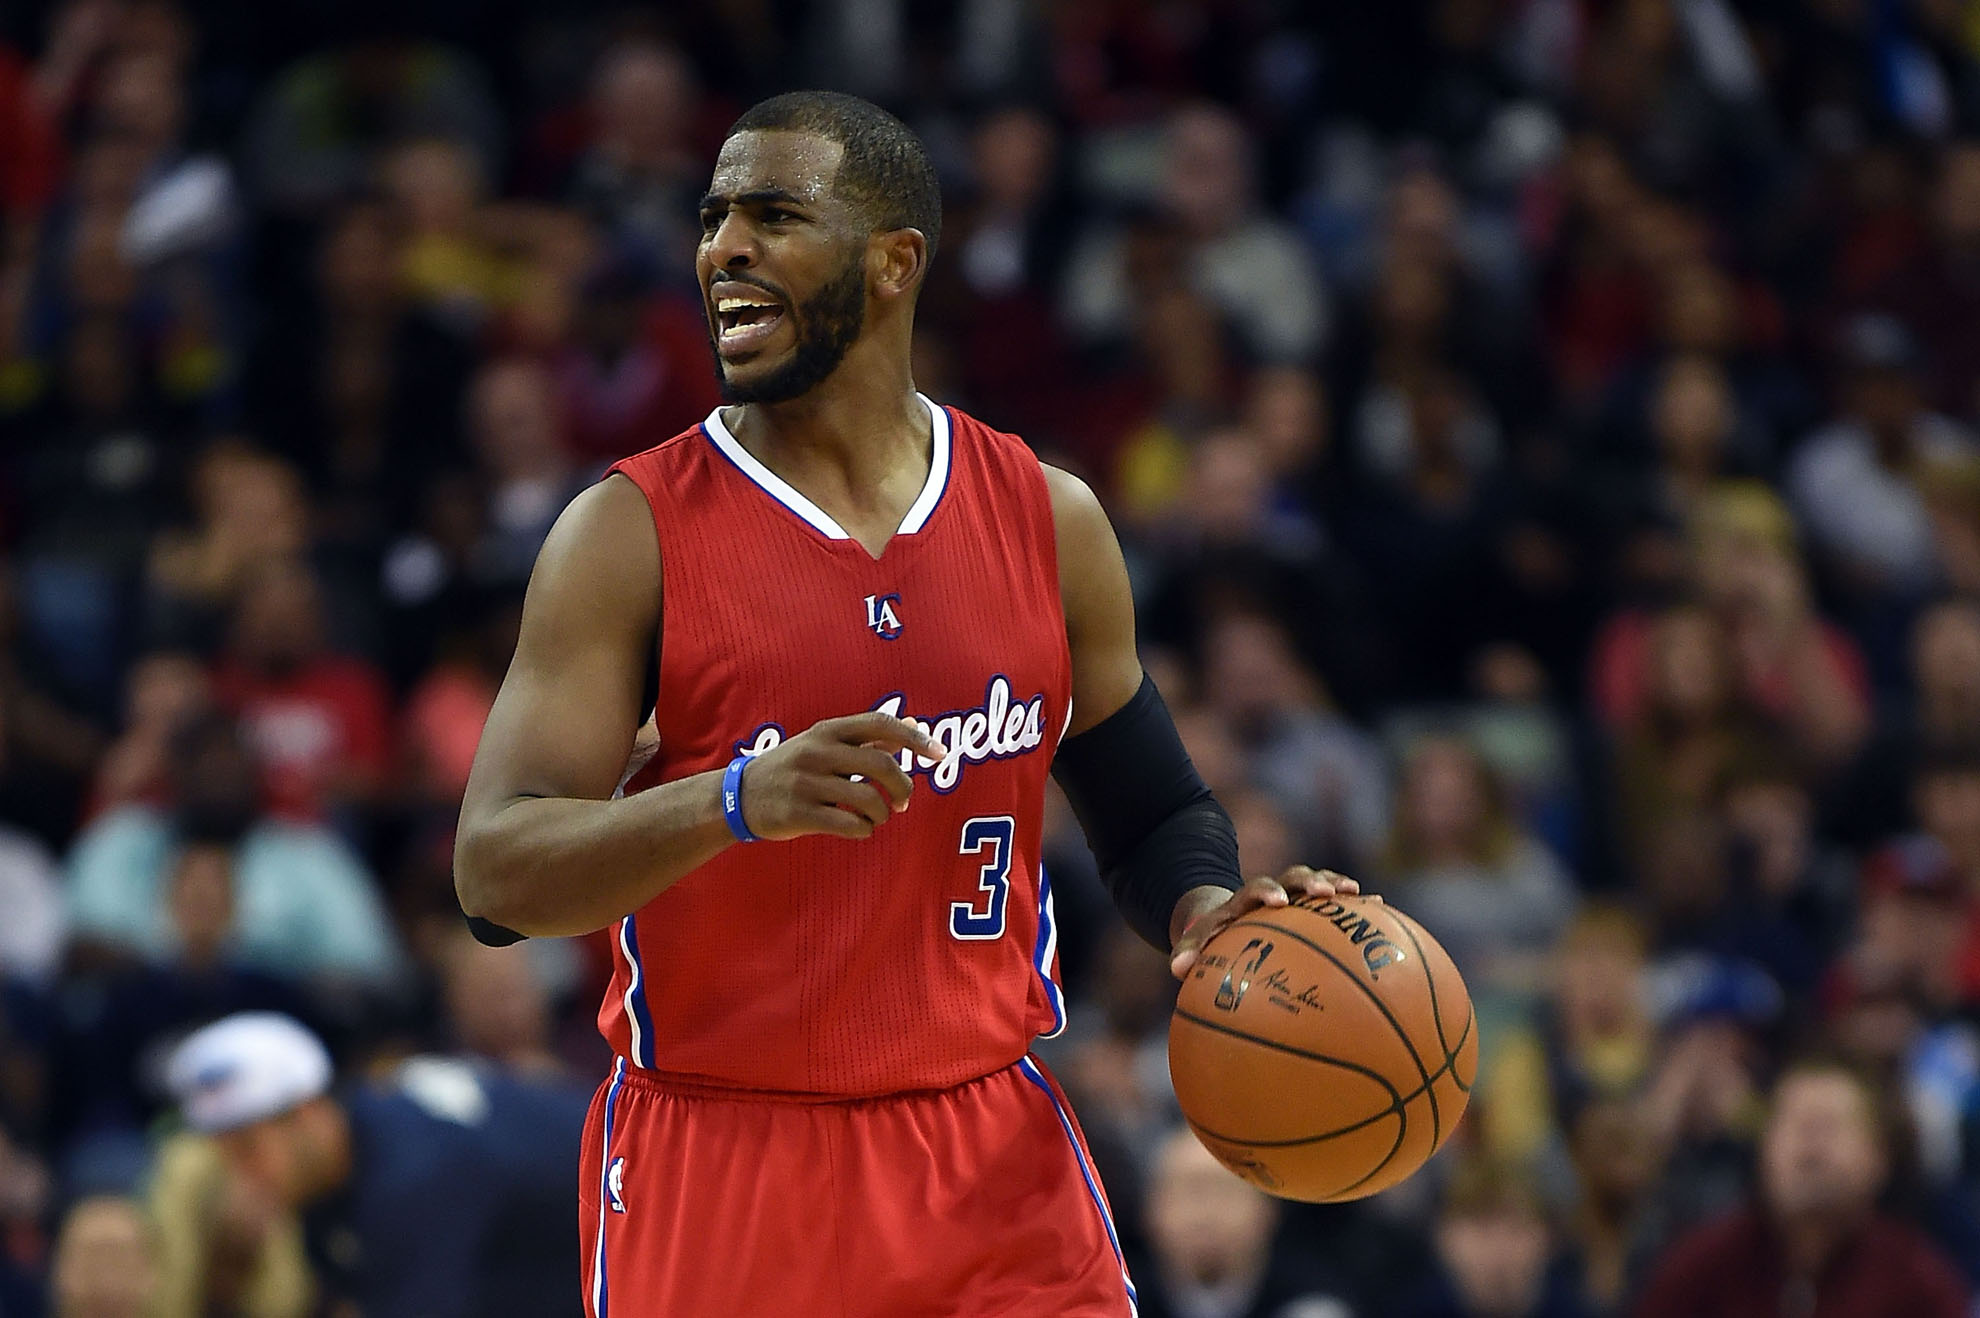 Chris Paul Wallpapers High Resolution and Quality Download